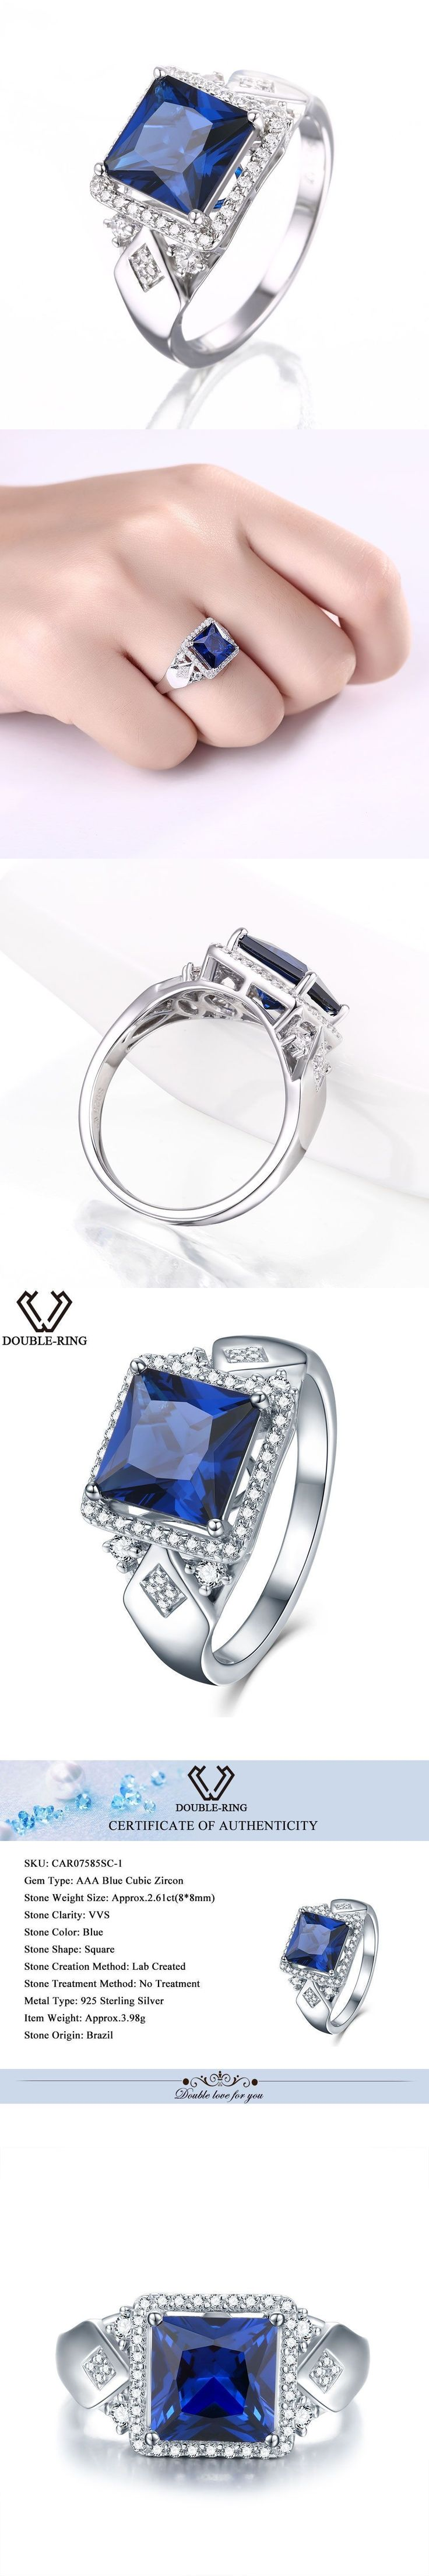 DOUBLE-R 925 Sterling Silver Jewelry Wedding Engagement Created Sapphire vintage Fine Jewelry Rings for women alibaba express #silverjewelry #jewelryrings #weddingrings